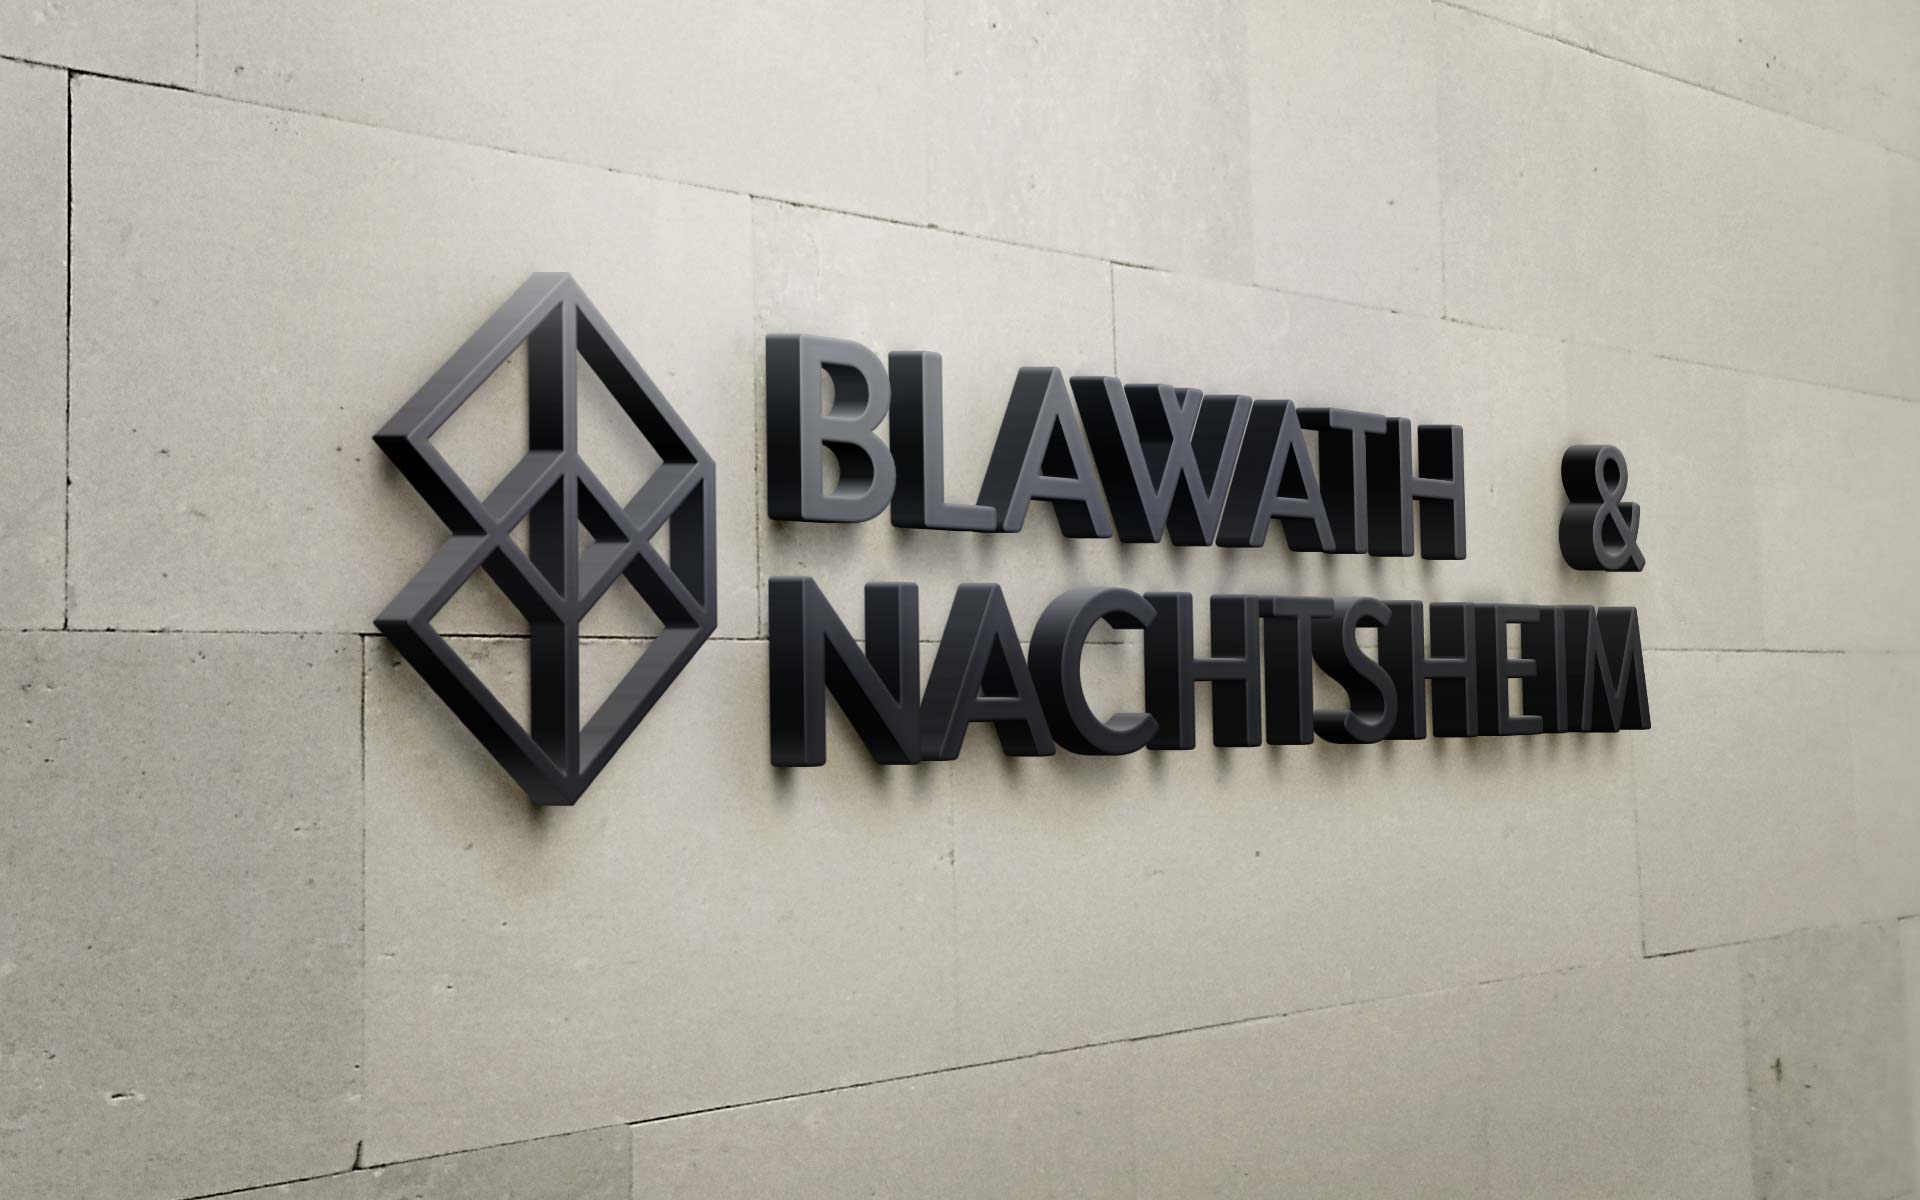 Blawath & Nachtsheim Corporate Design, Signage